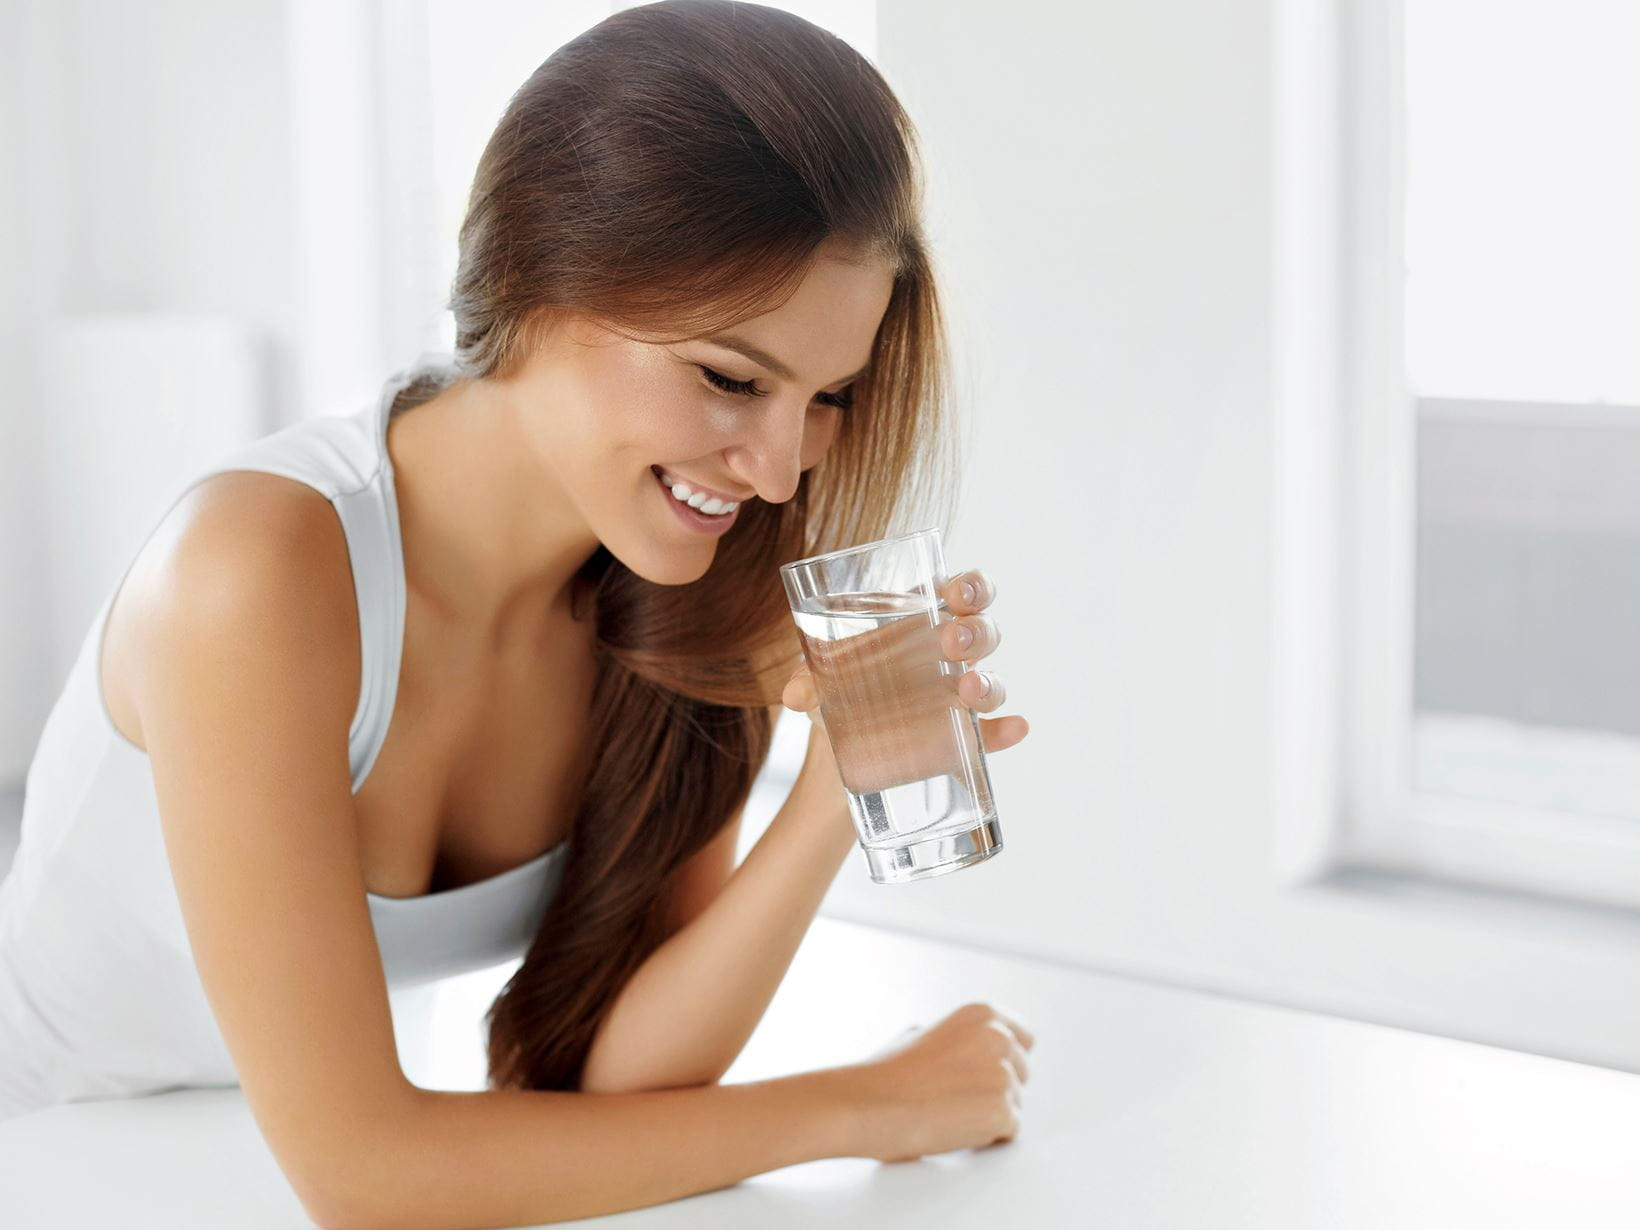 woman-holding-a-glass-of-water